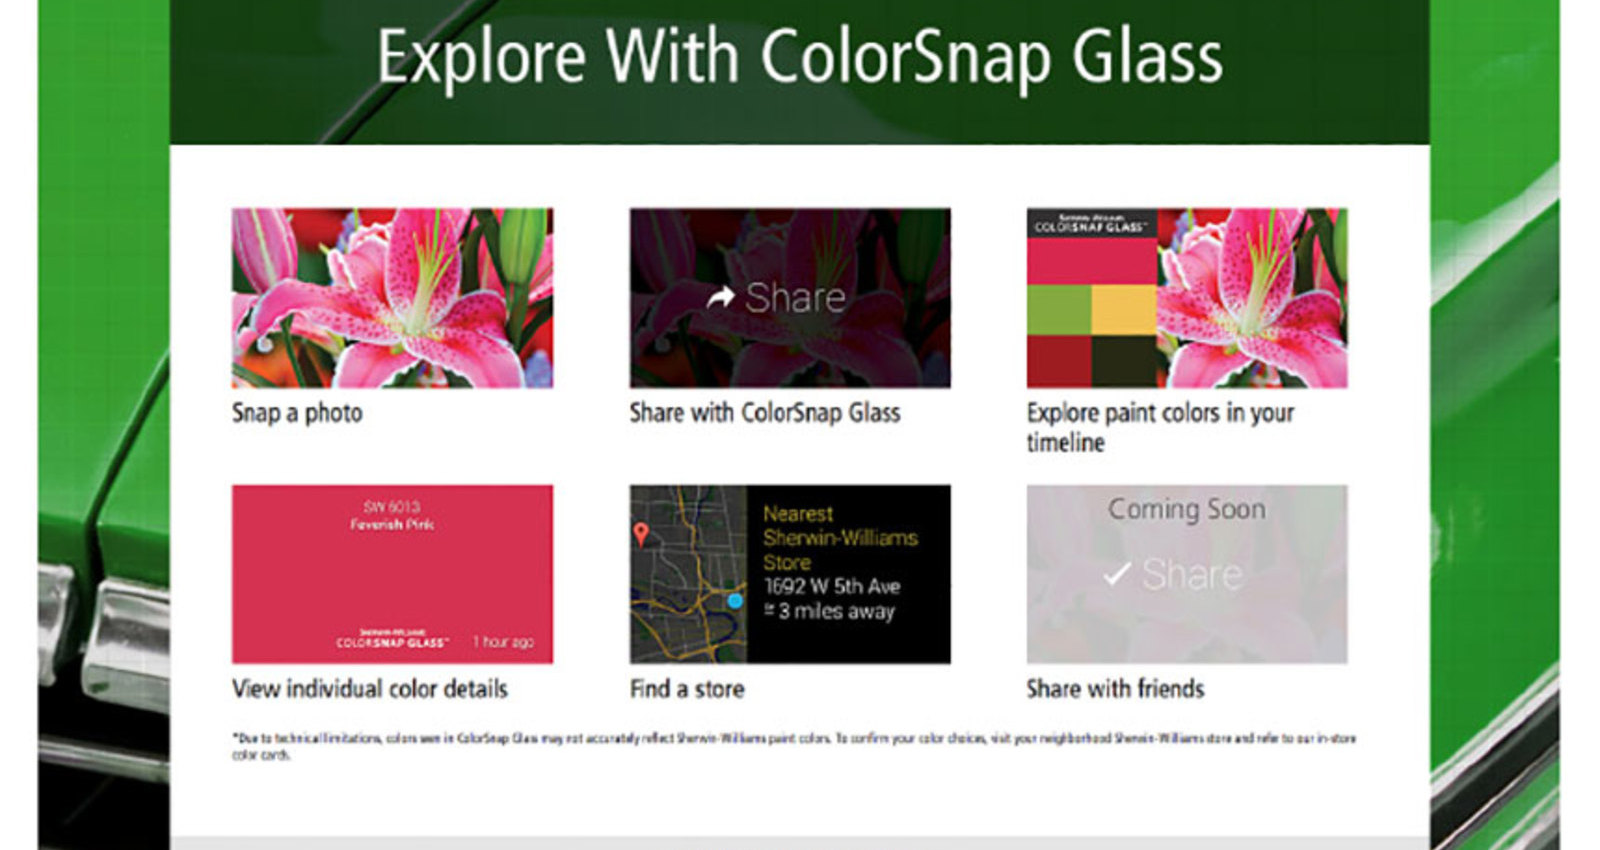 ColorSnap Glass™